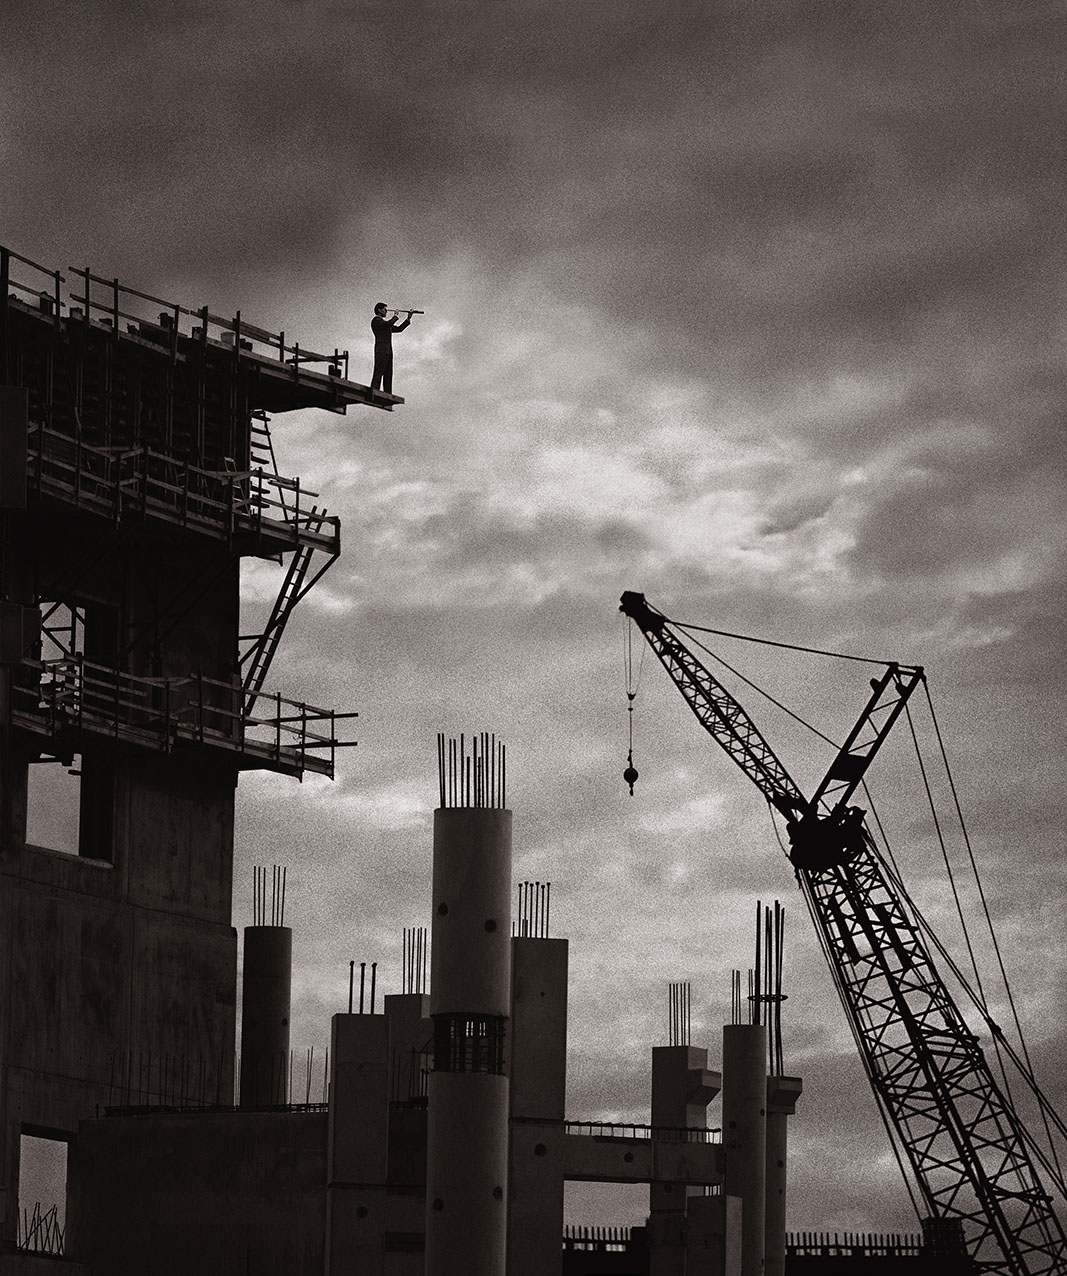 Staubach-Construction sharpMan0.3 1276px 08